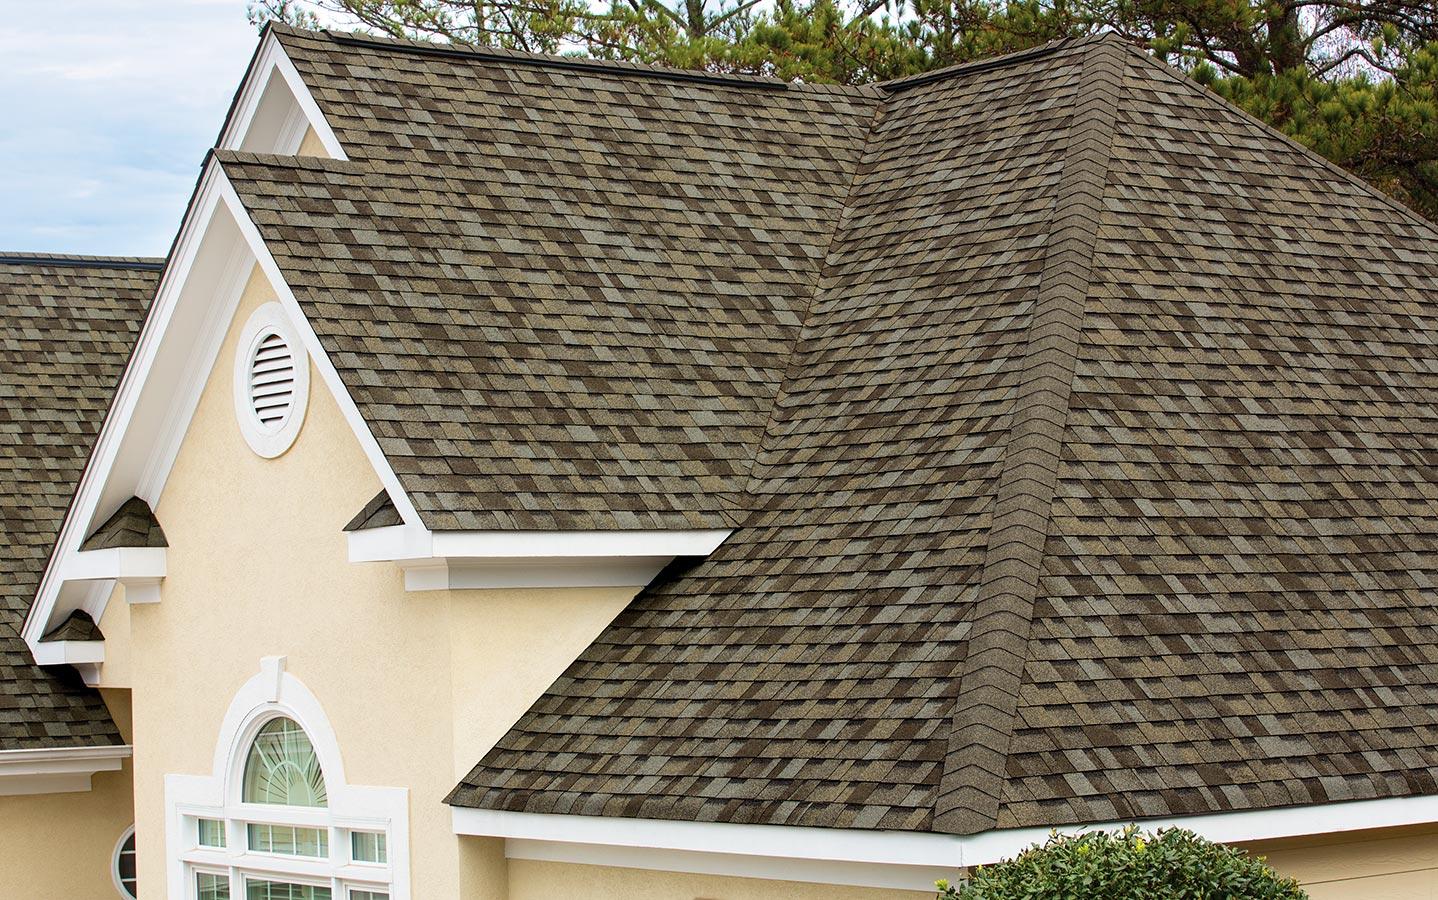 New 50 Year Roof in Toms River, NJ